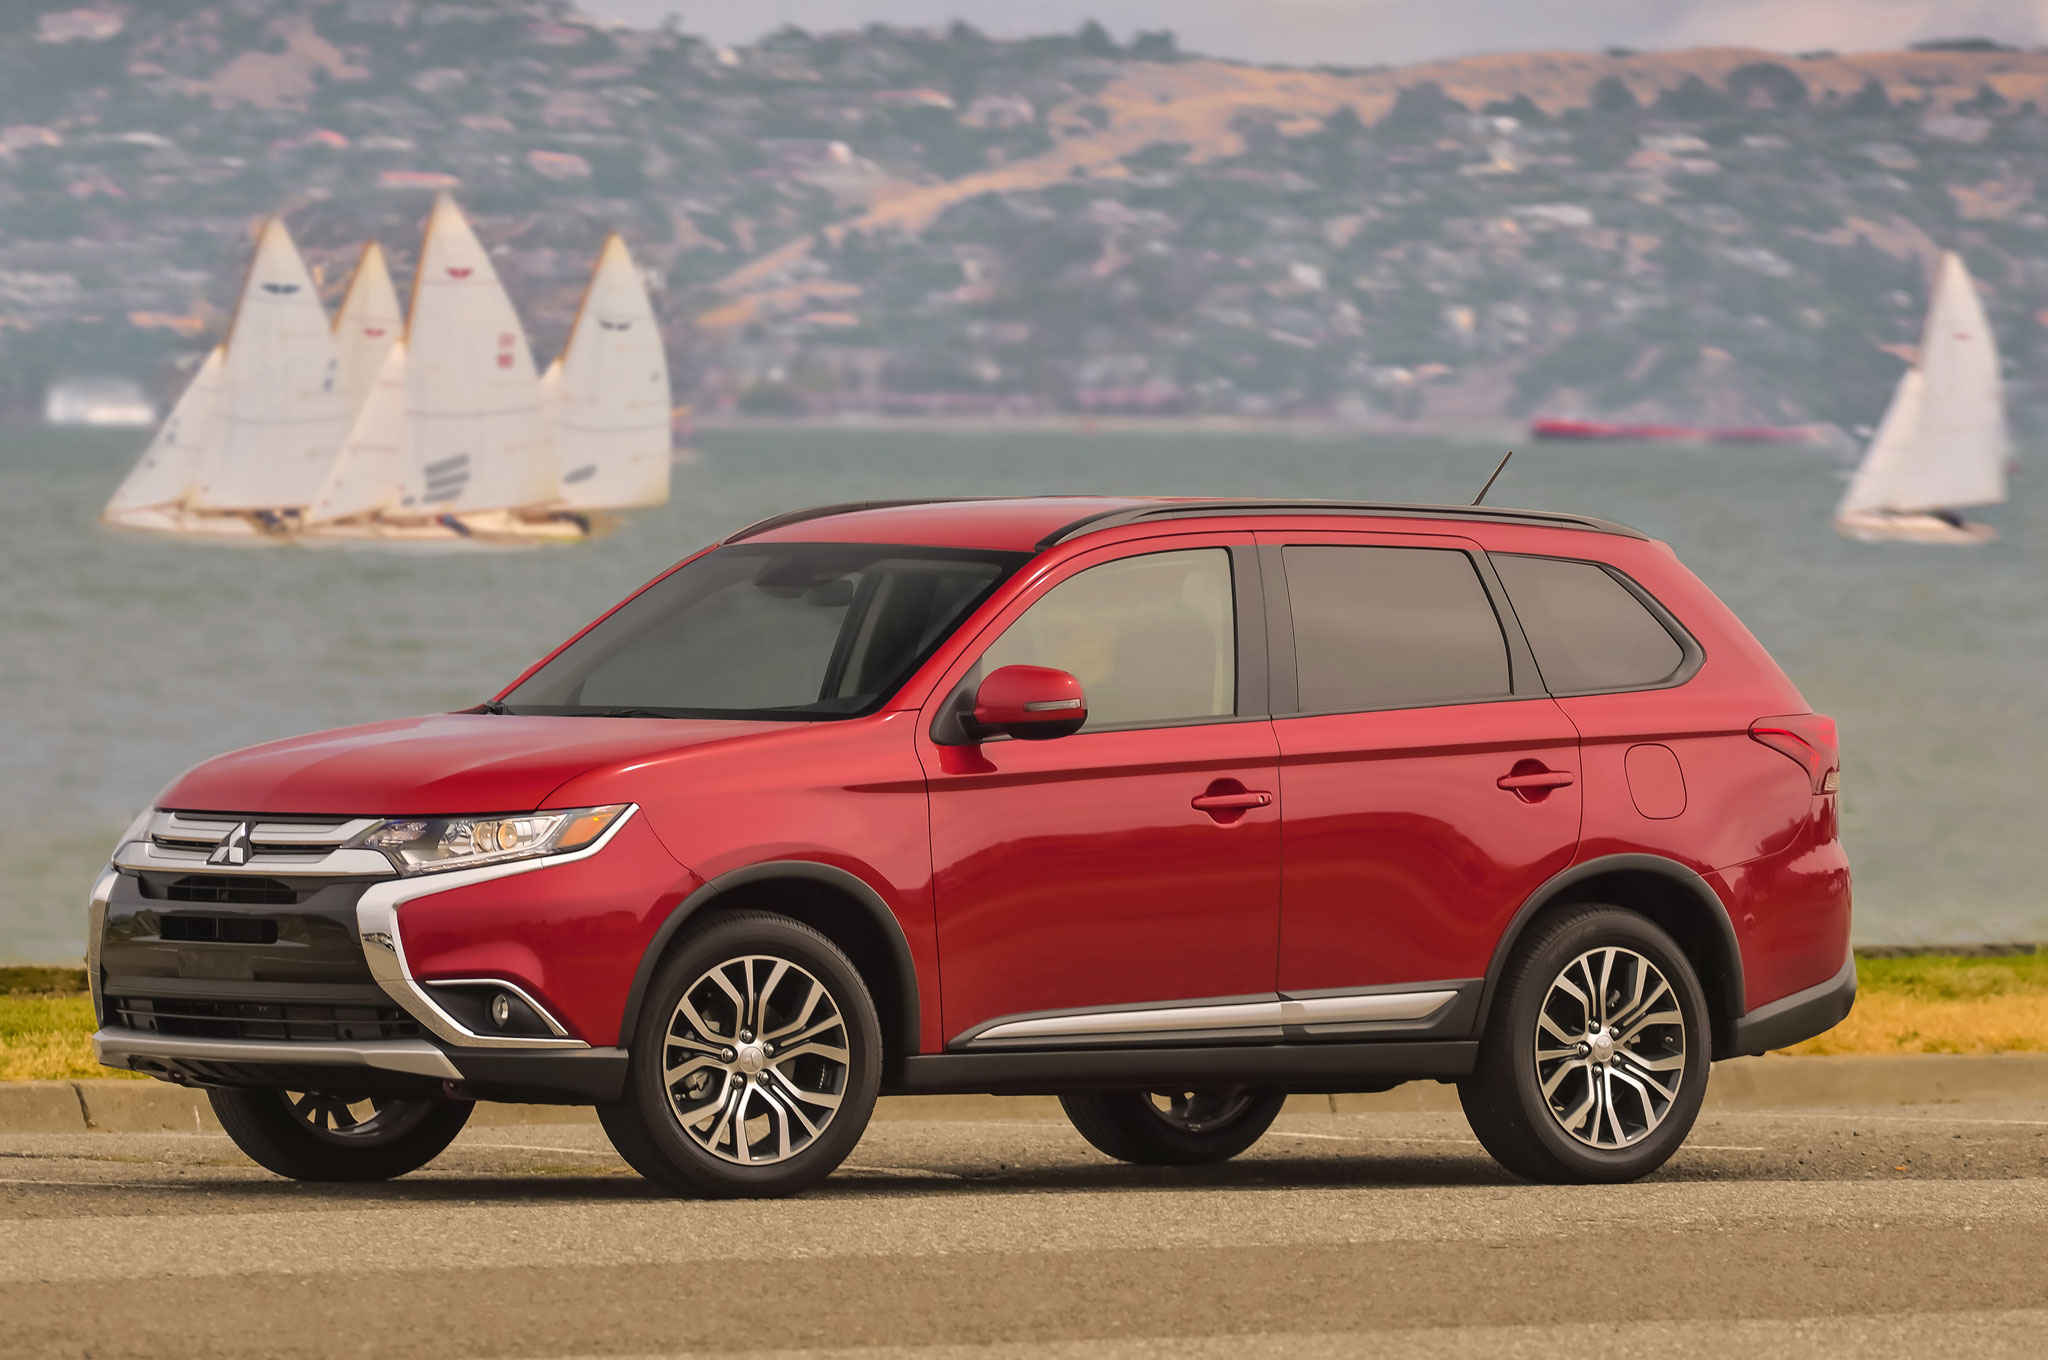 2016 Mitsubishi Outlander Front Three Quarter 08